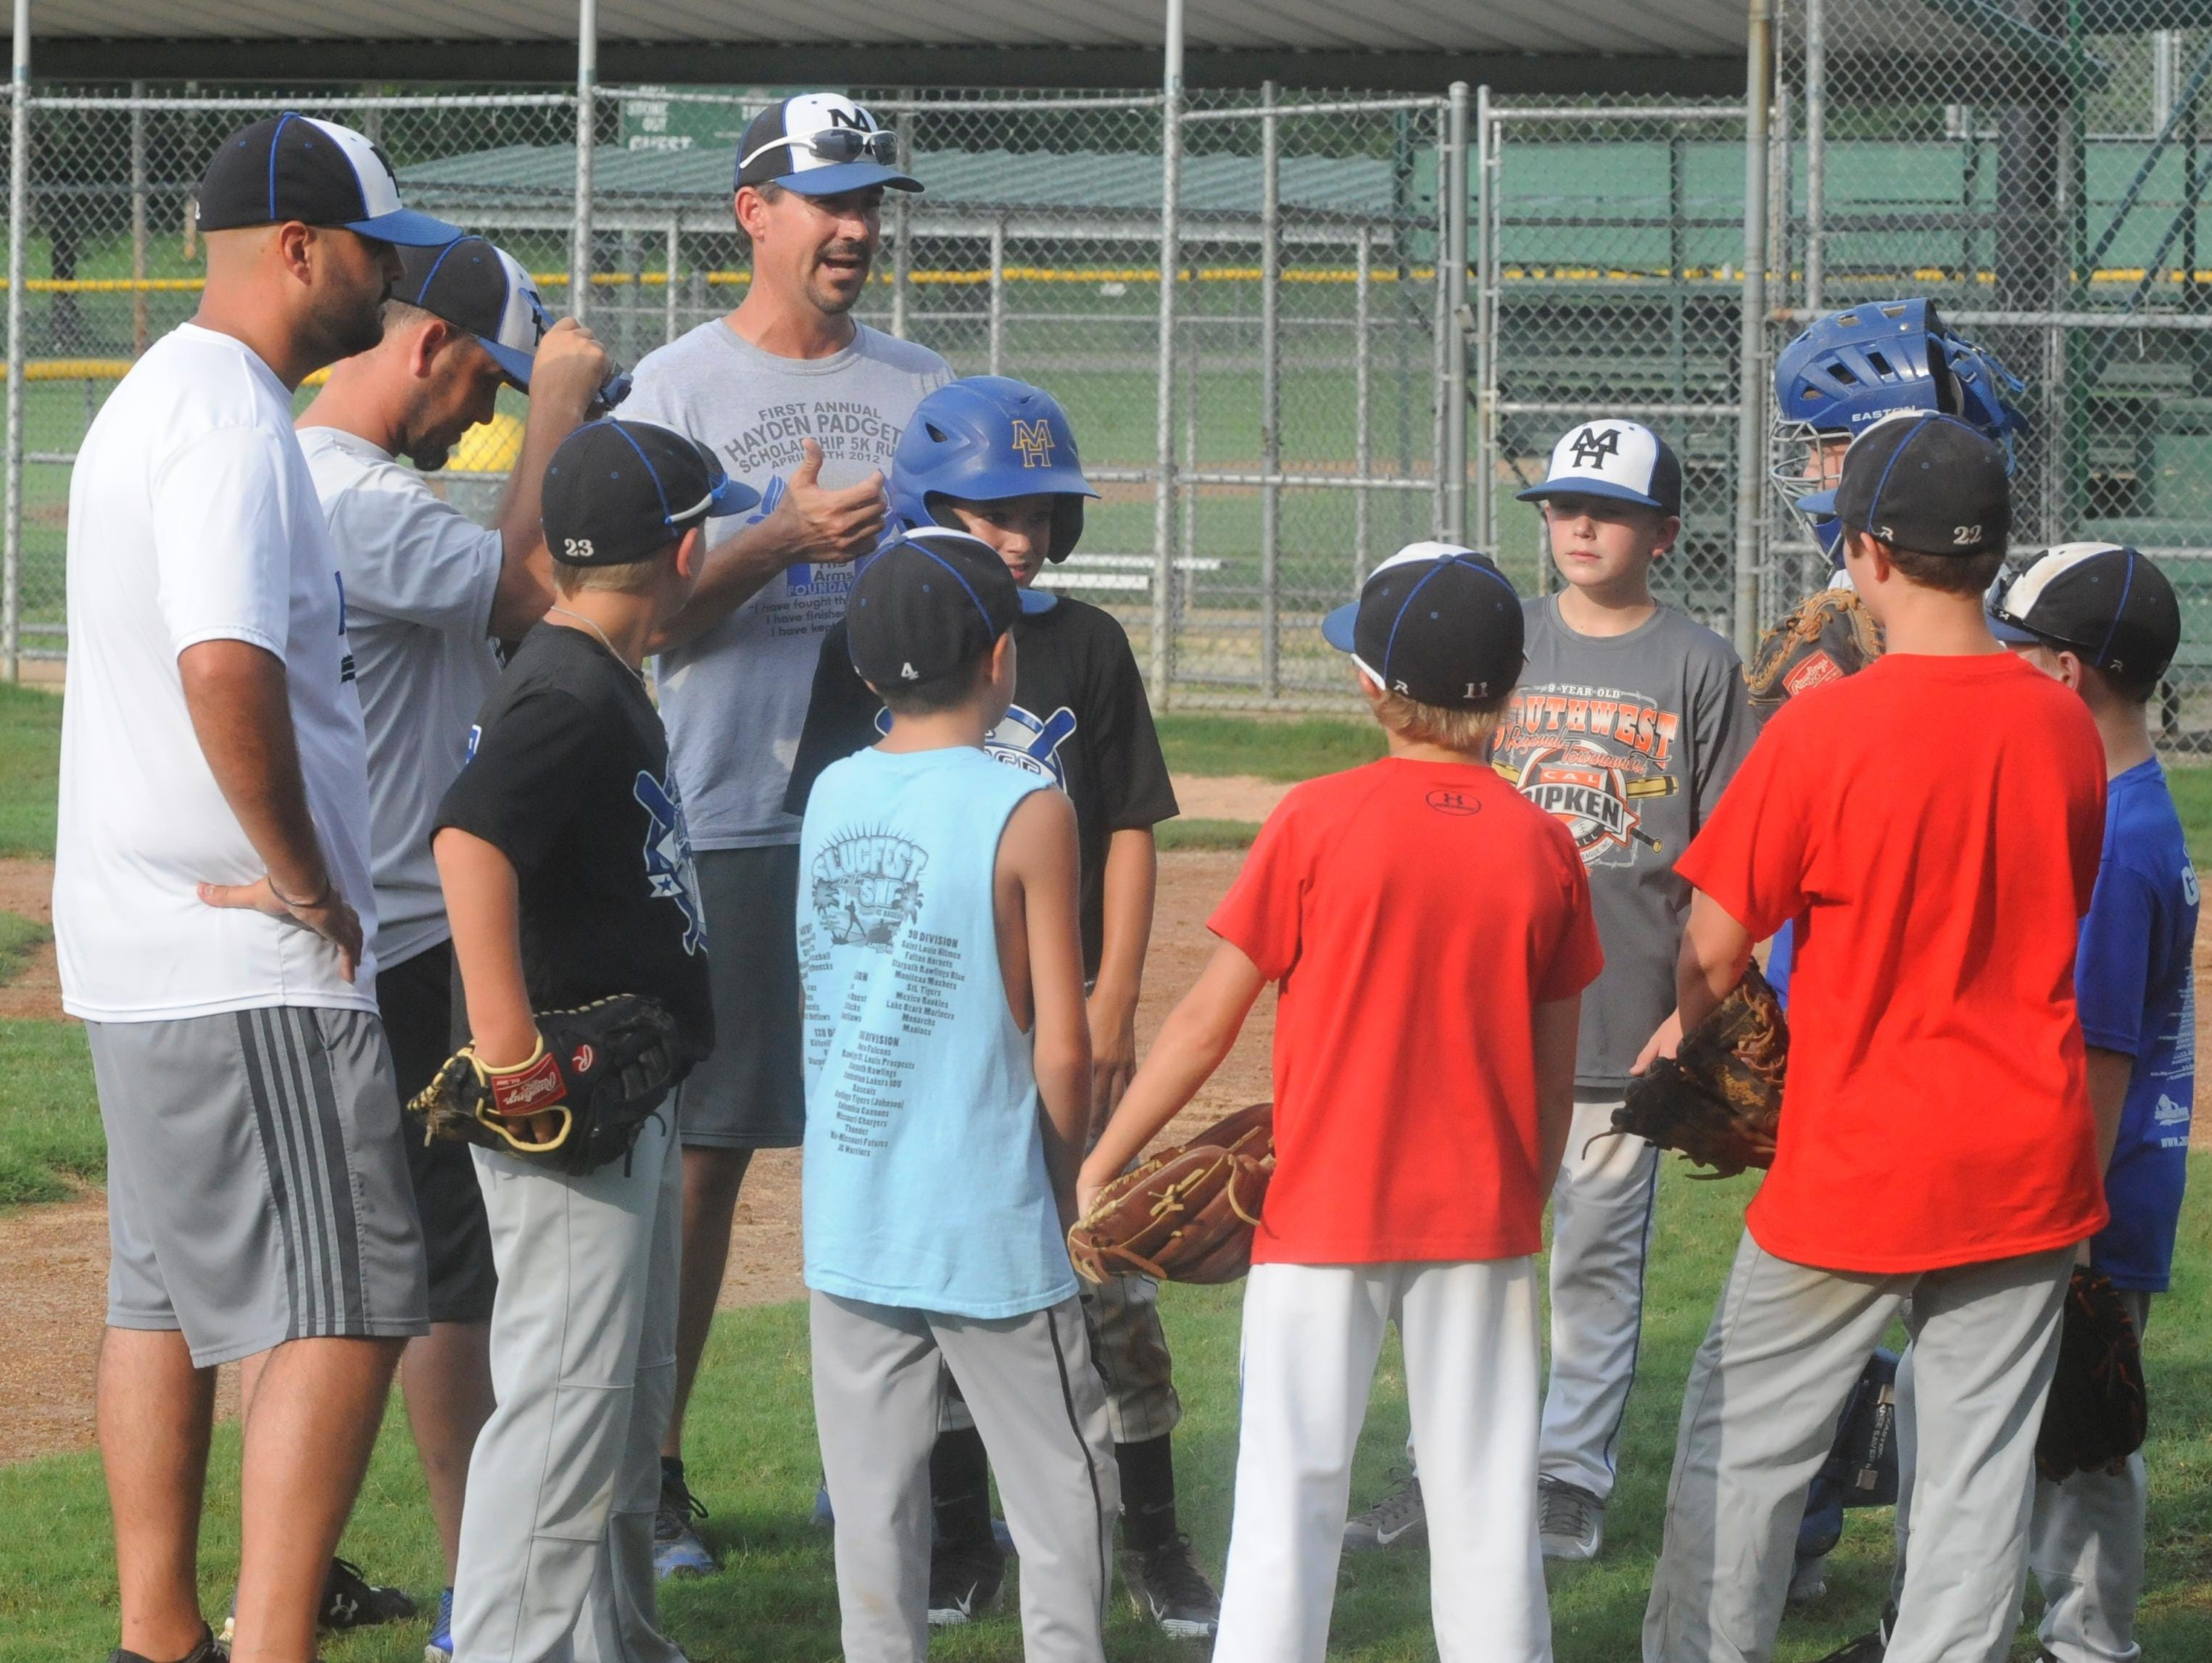 Members of the Mountain Home Force 10-year-old all-star team listen to coach Tom Czanstkowski, fourth from left, before a recent practice at Clysta Willett Park. The team is playing at the Cal Ripken 10-year-old World Series in Jonesboro, beginning Aug. 8.